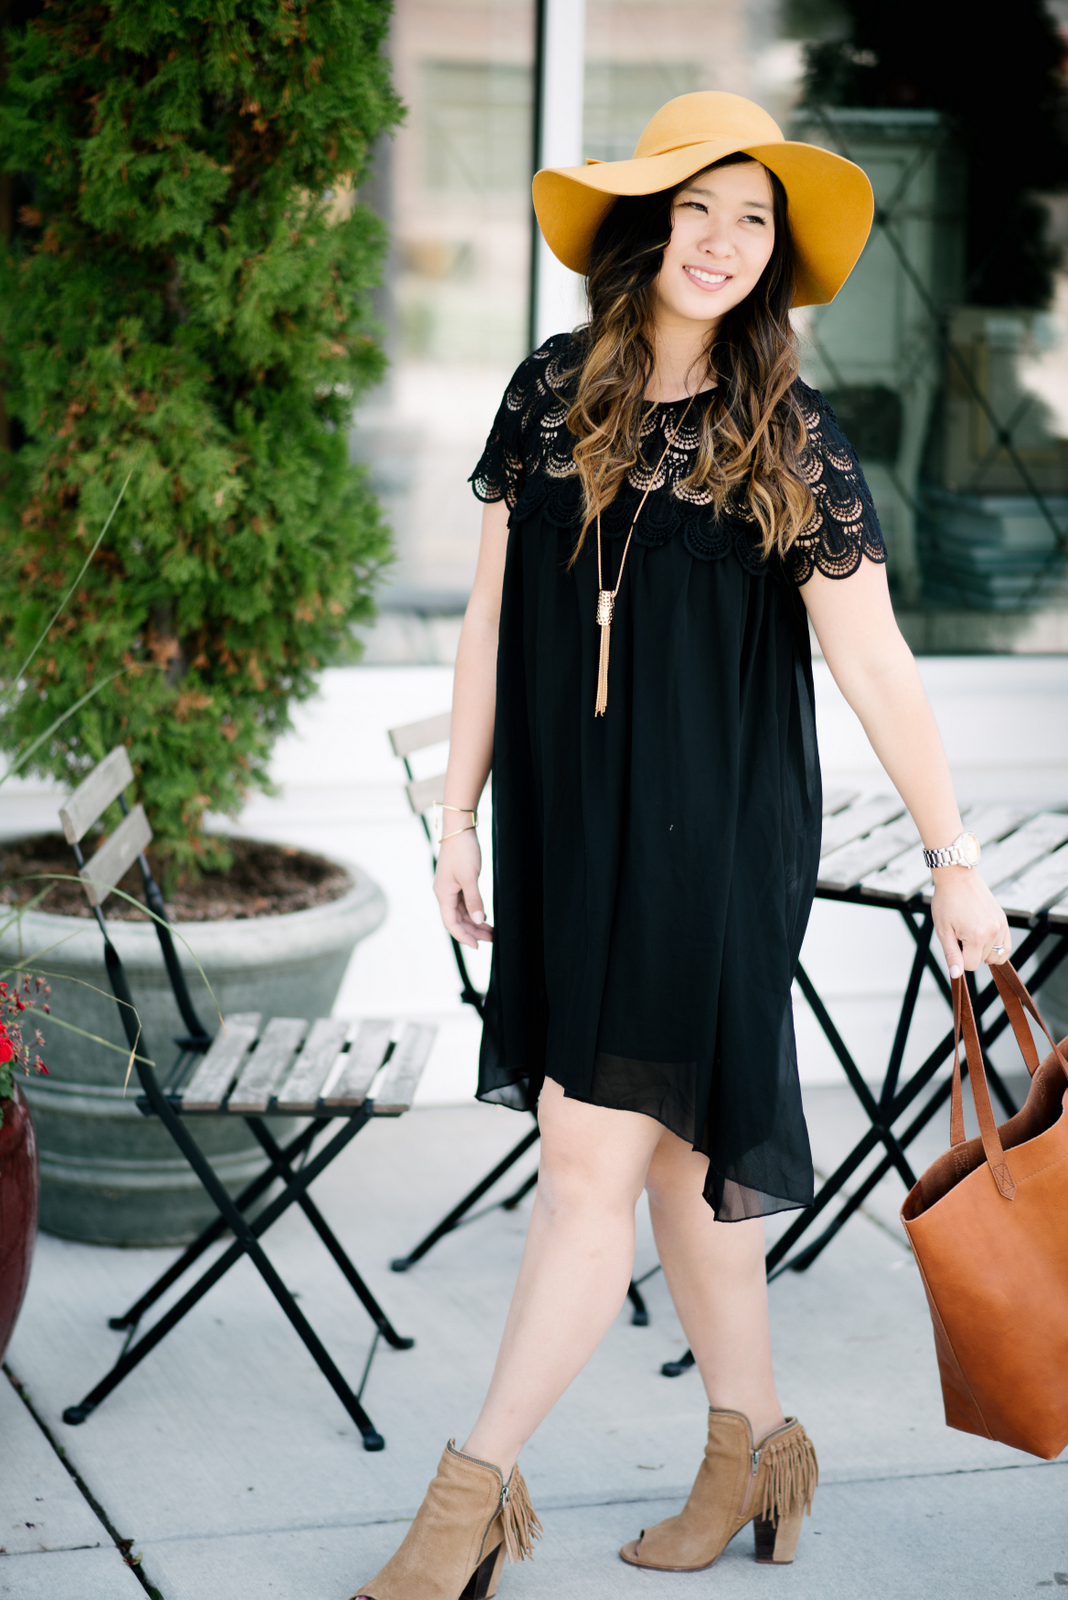 Little black dress and hat